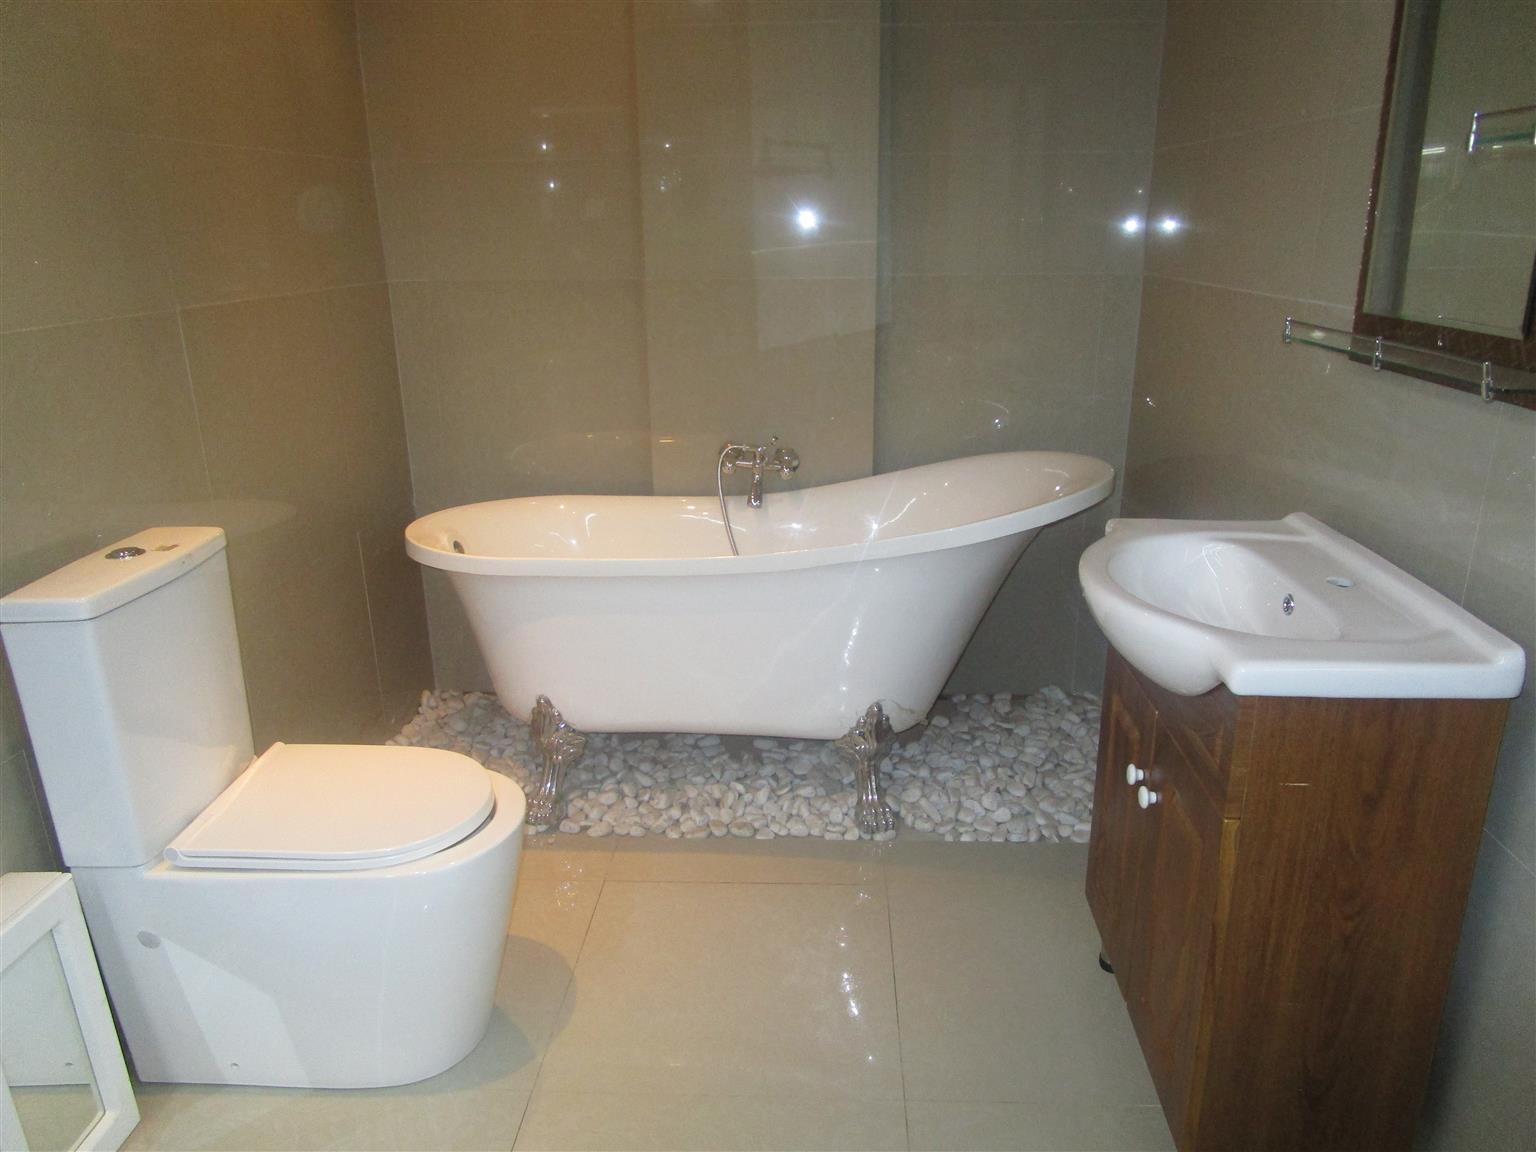 FREE STANDING BATH, BASIN & CABINET